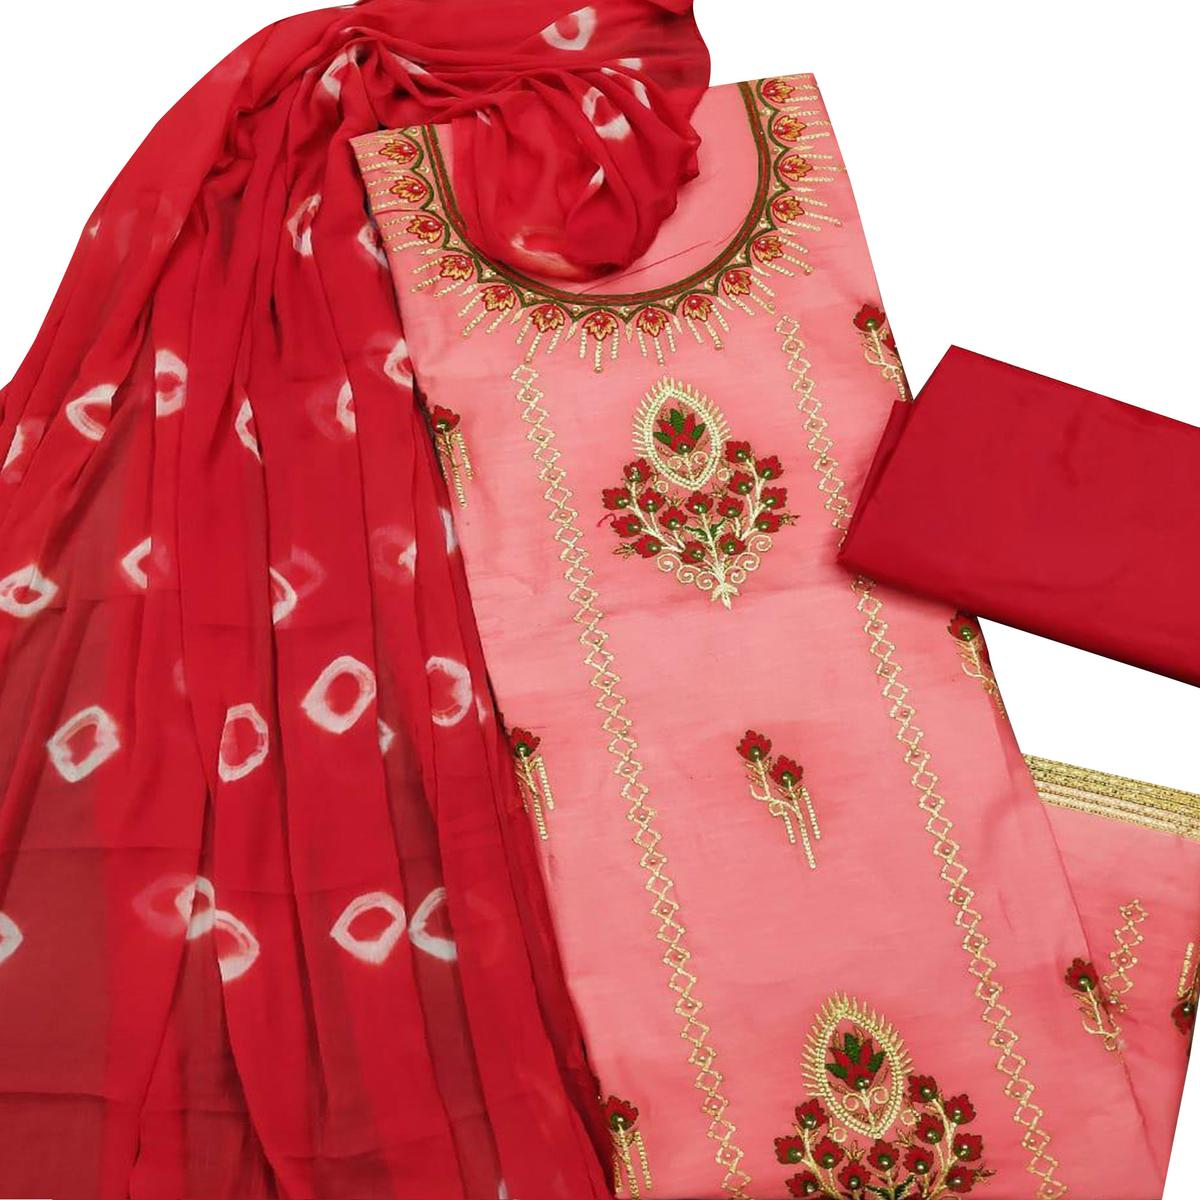 IRIS - Peach Colored Partywear Floral Embroidered Modal-Chanderi Cotton Dress Material